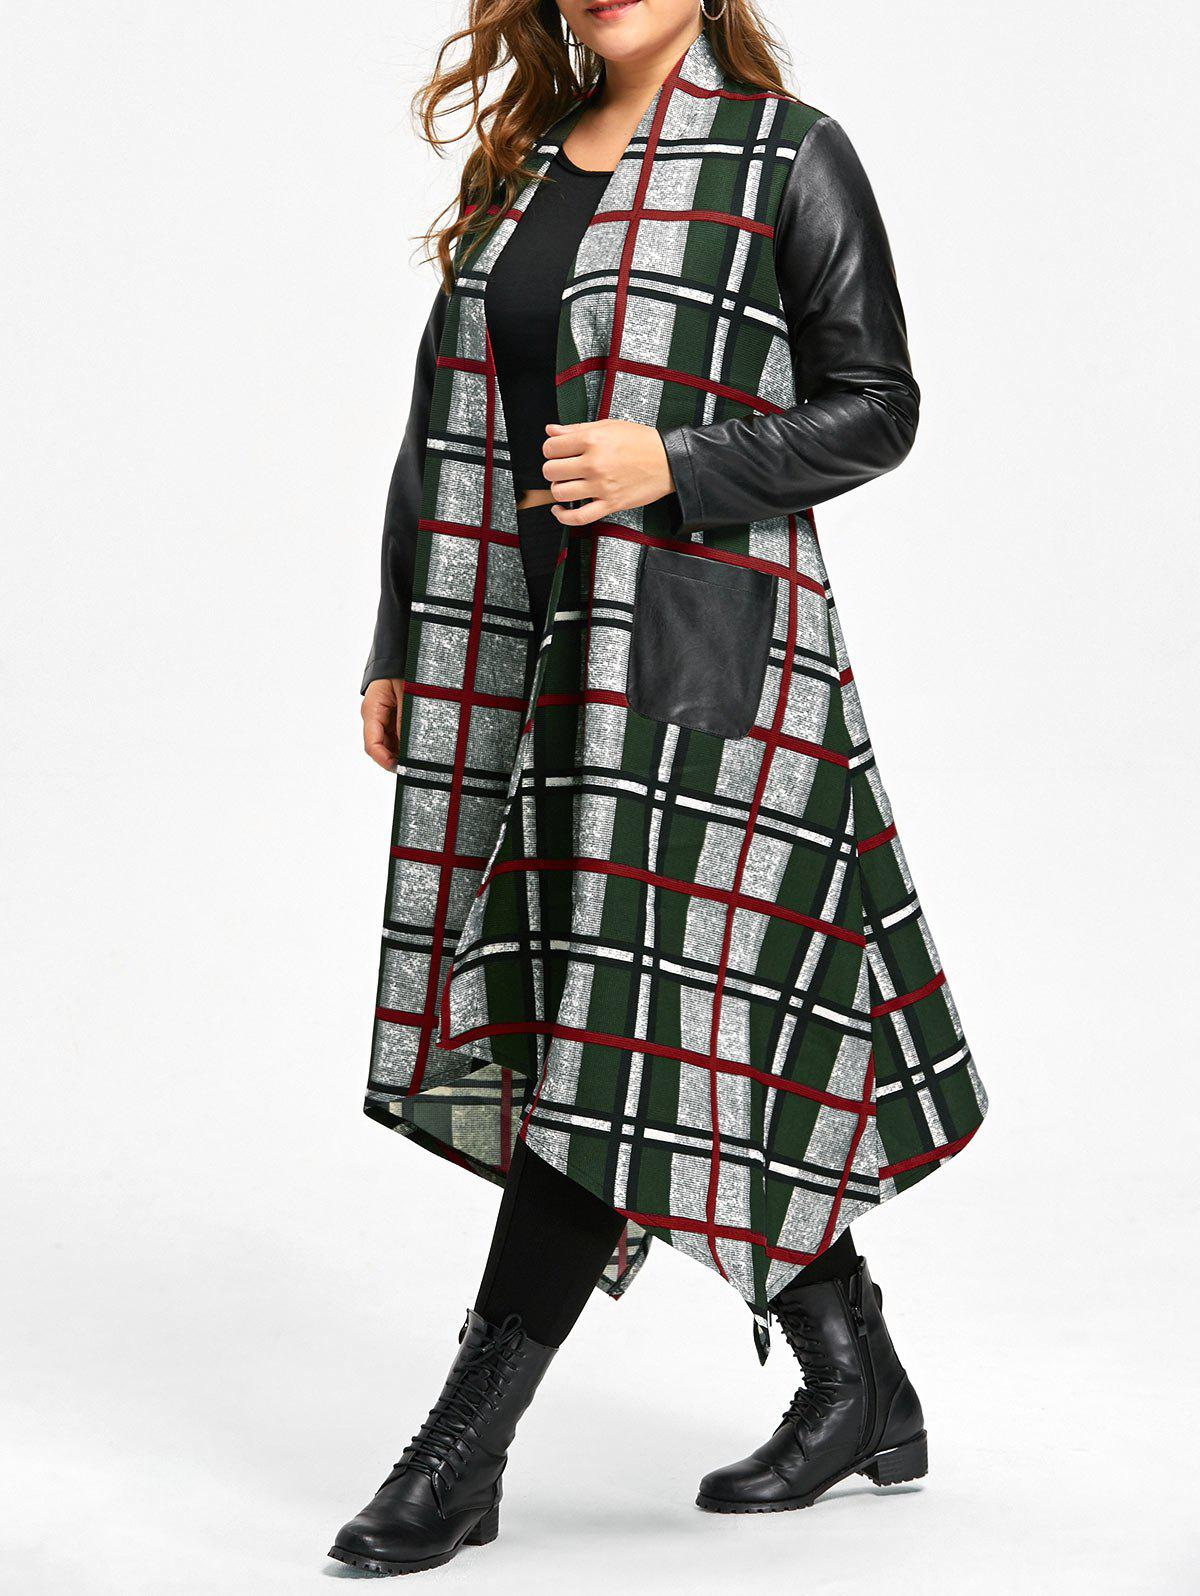 Asymmetrical Leather Insert Plus Size Longline Plaid Coat - COLORMIX XL